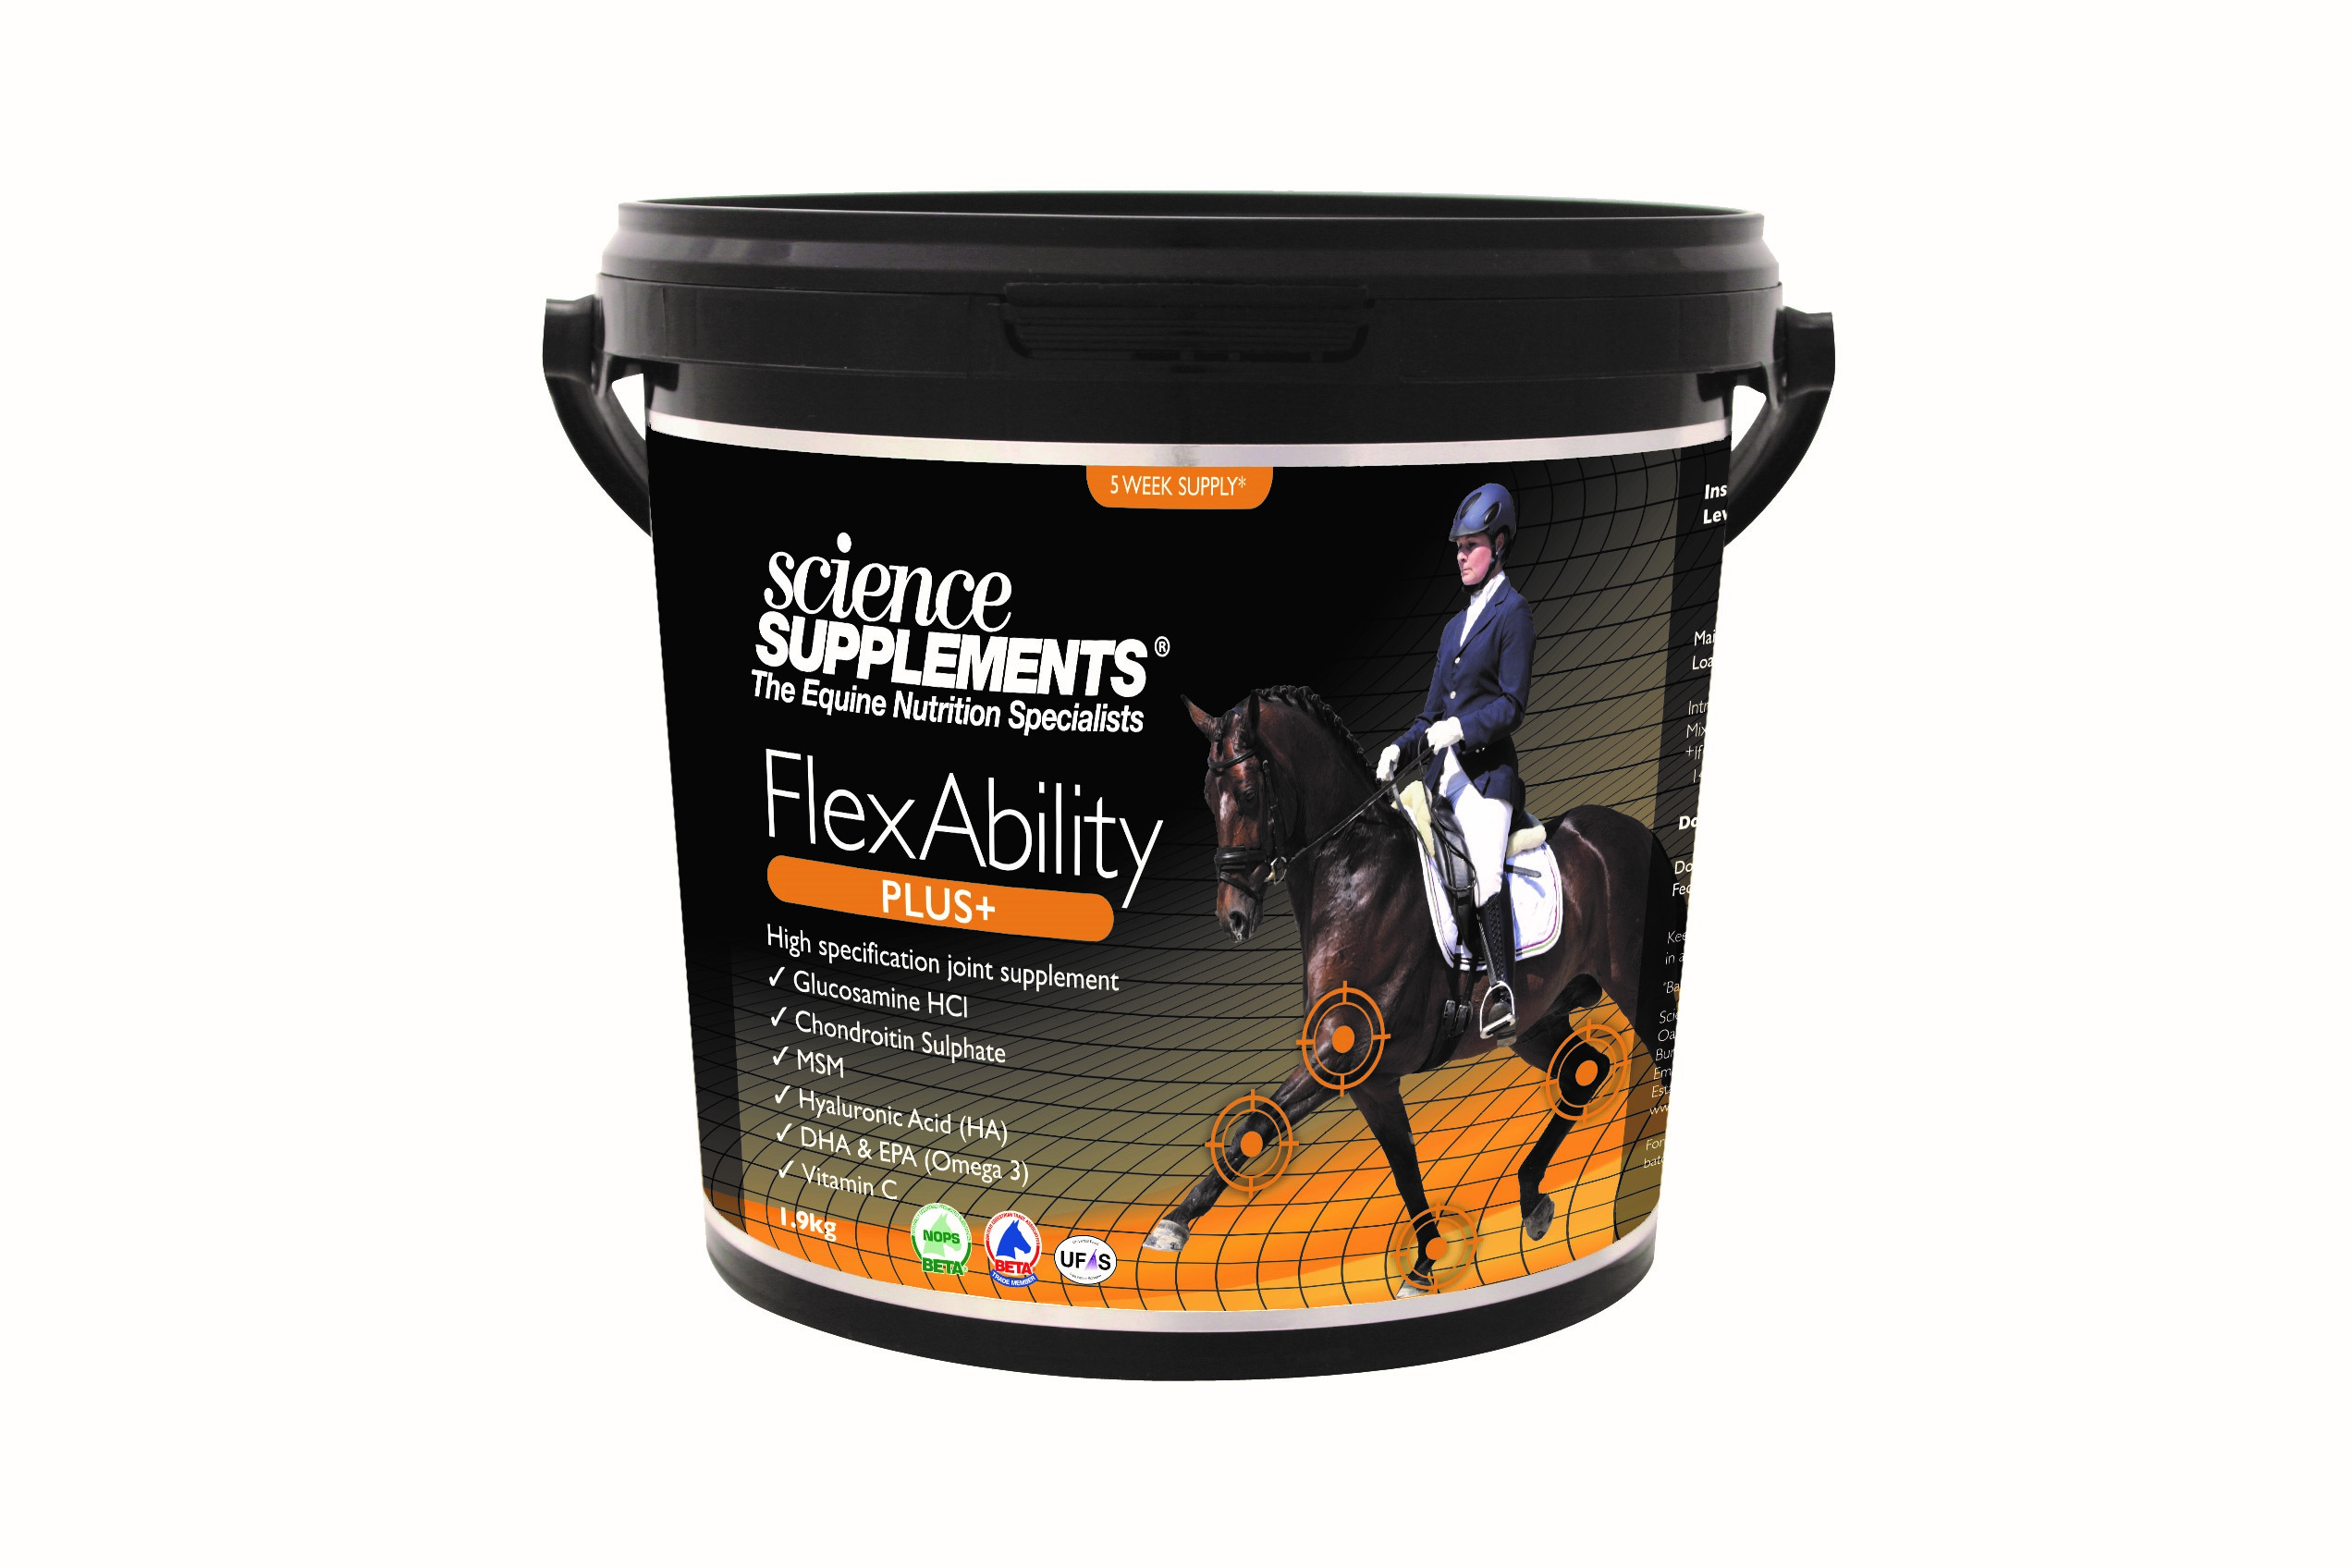 FlexAbility Plus+, Science Supplements